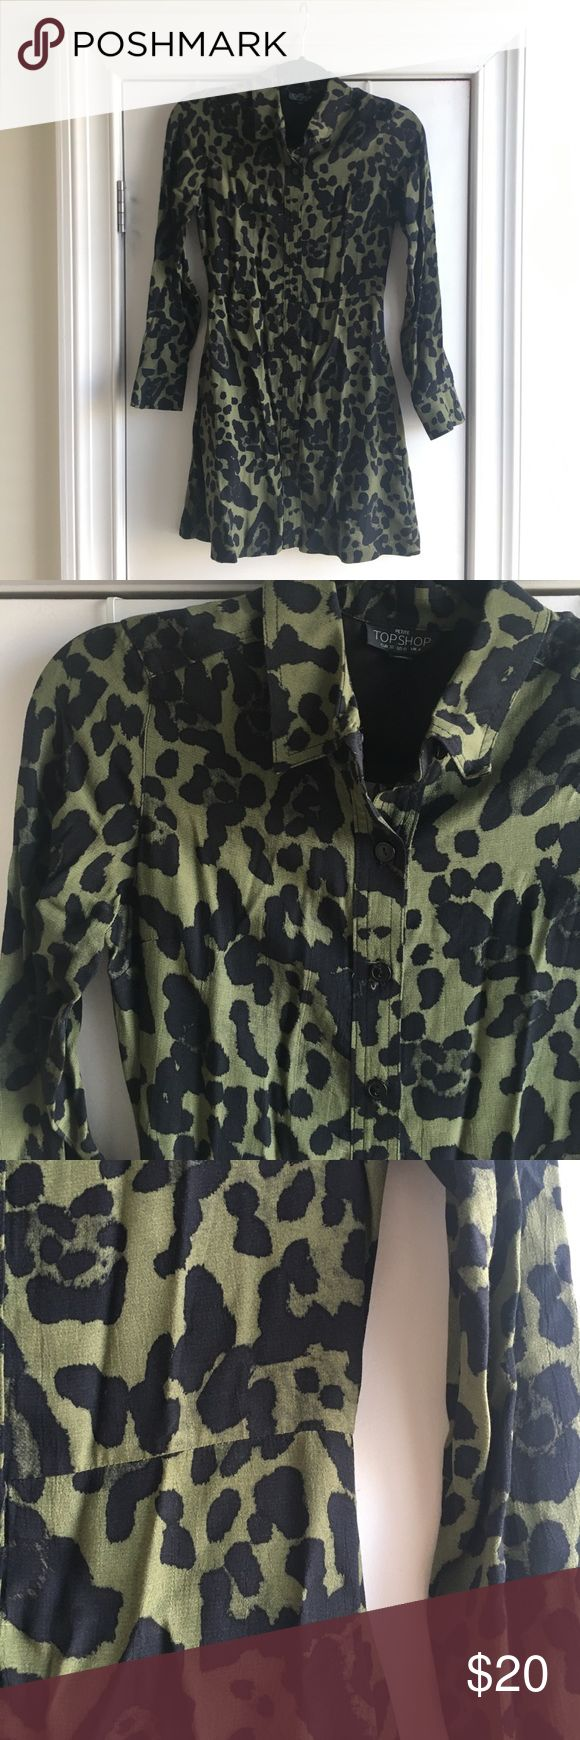 Topshop Petite Leopard Print Shirt Dress Topshop olive green leopard print button down shirt dress with a slightly tapered waist (see photo detail).   Perfect for fall. Layer over tights or jeans (dress-over-jeans trend!) or a turtleneck top.   Size PETITE US 0, EUR 32, UK 4. Measurements upon request. Topshop PETITE Dresses Long Sleeve